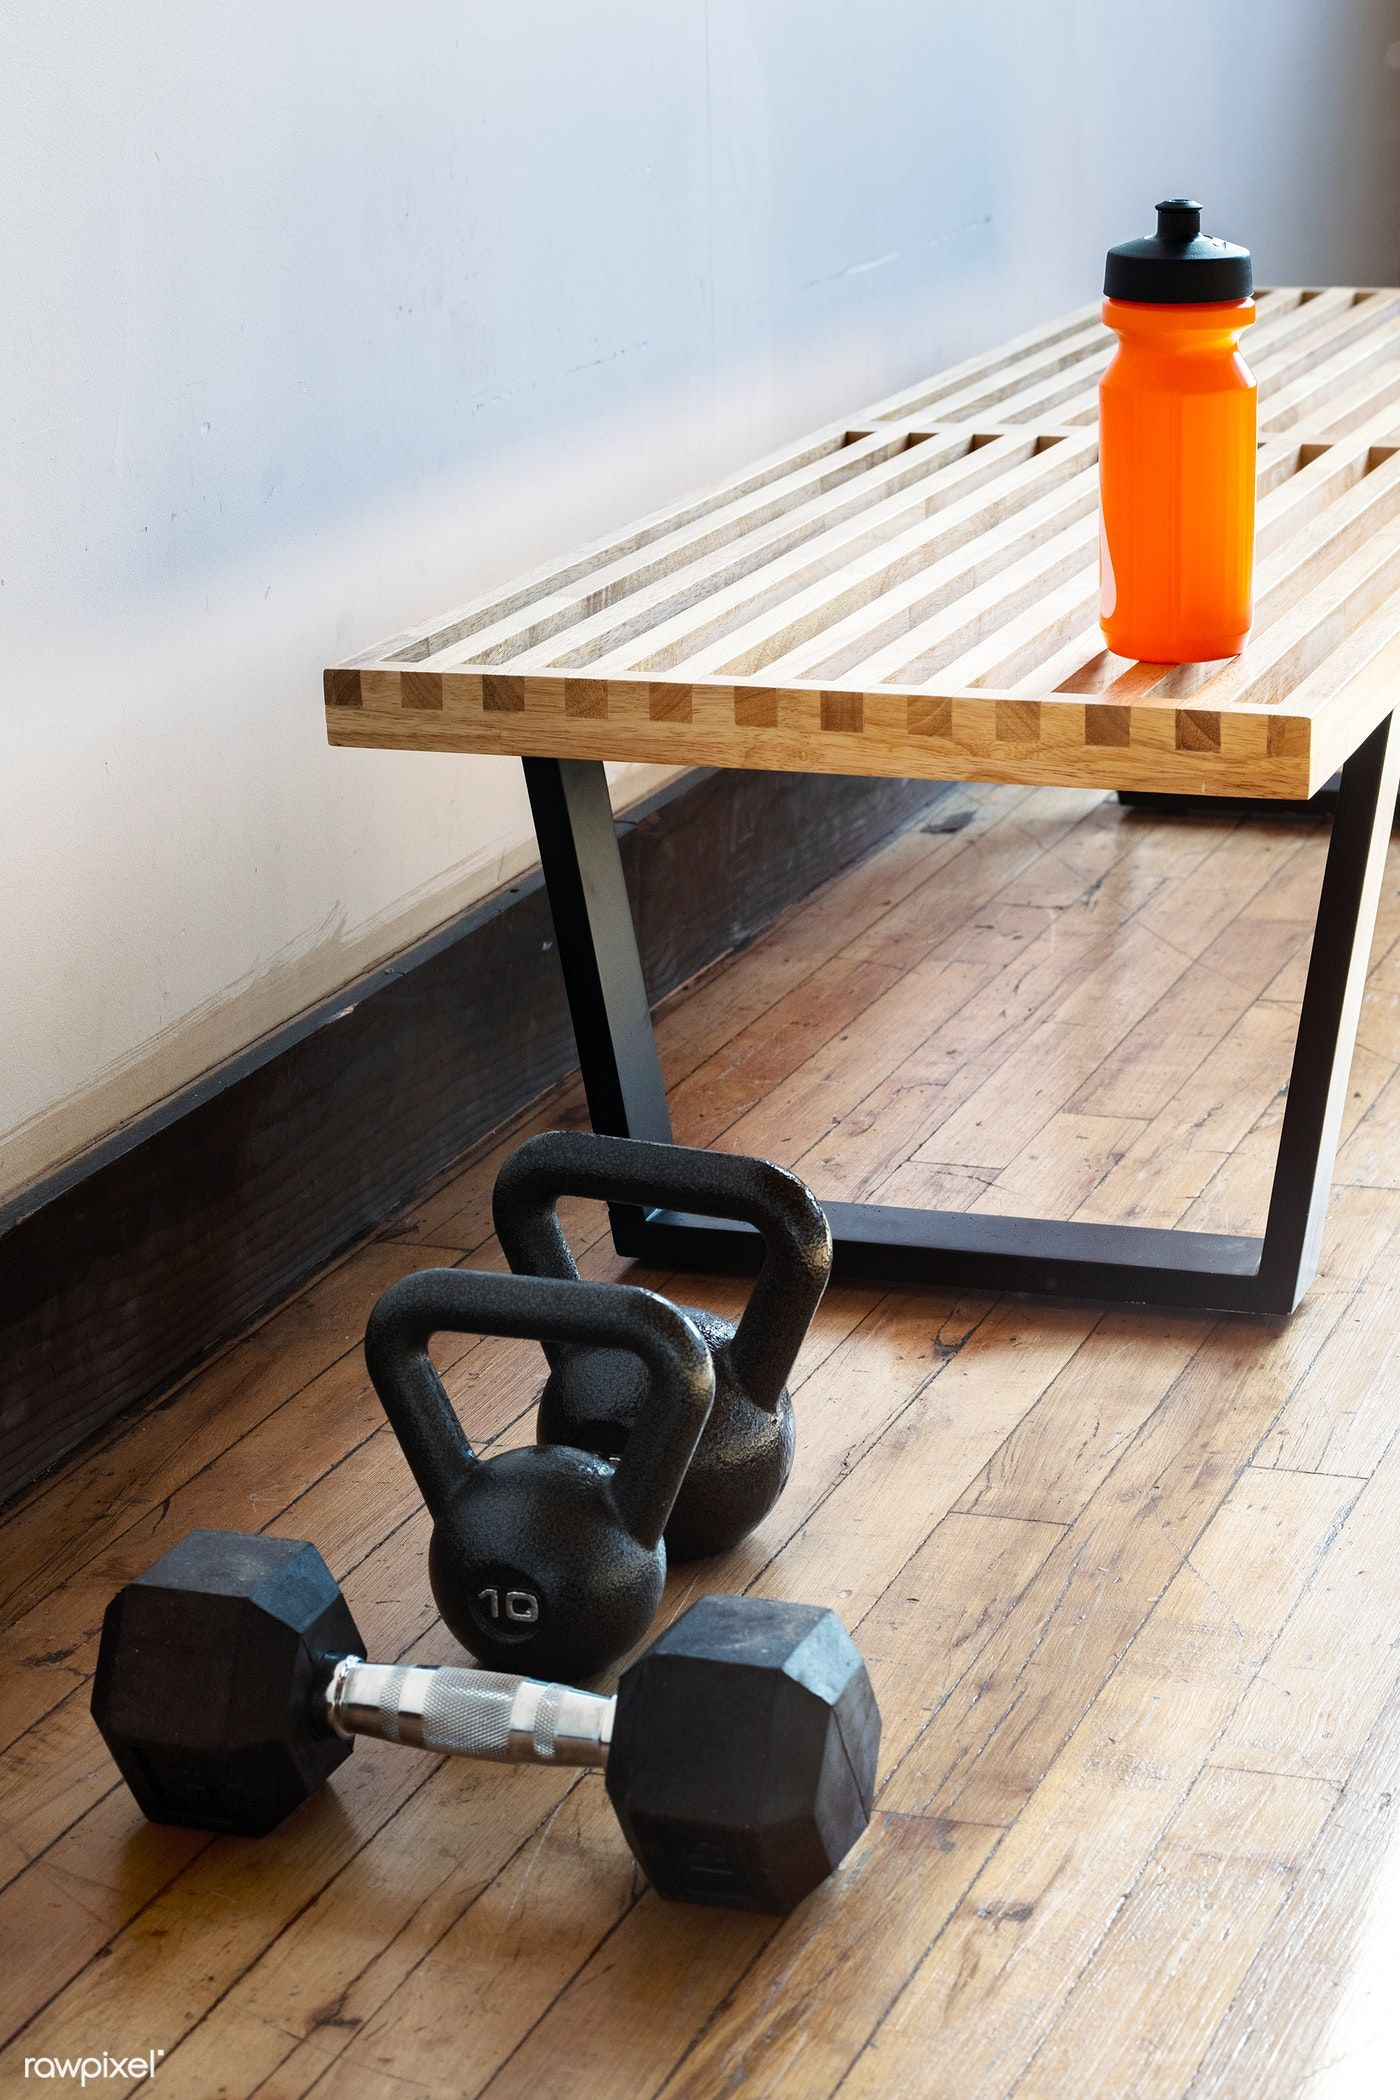 Download premium photo of fitness equipment in a gym